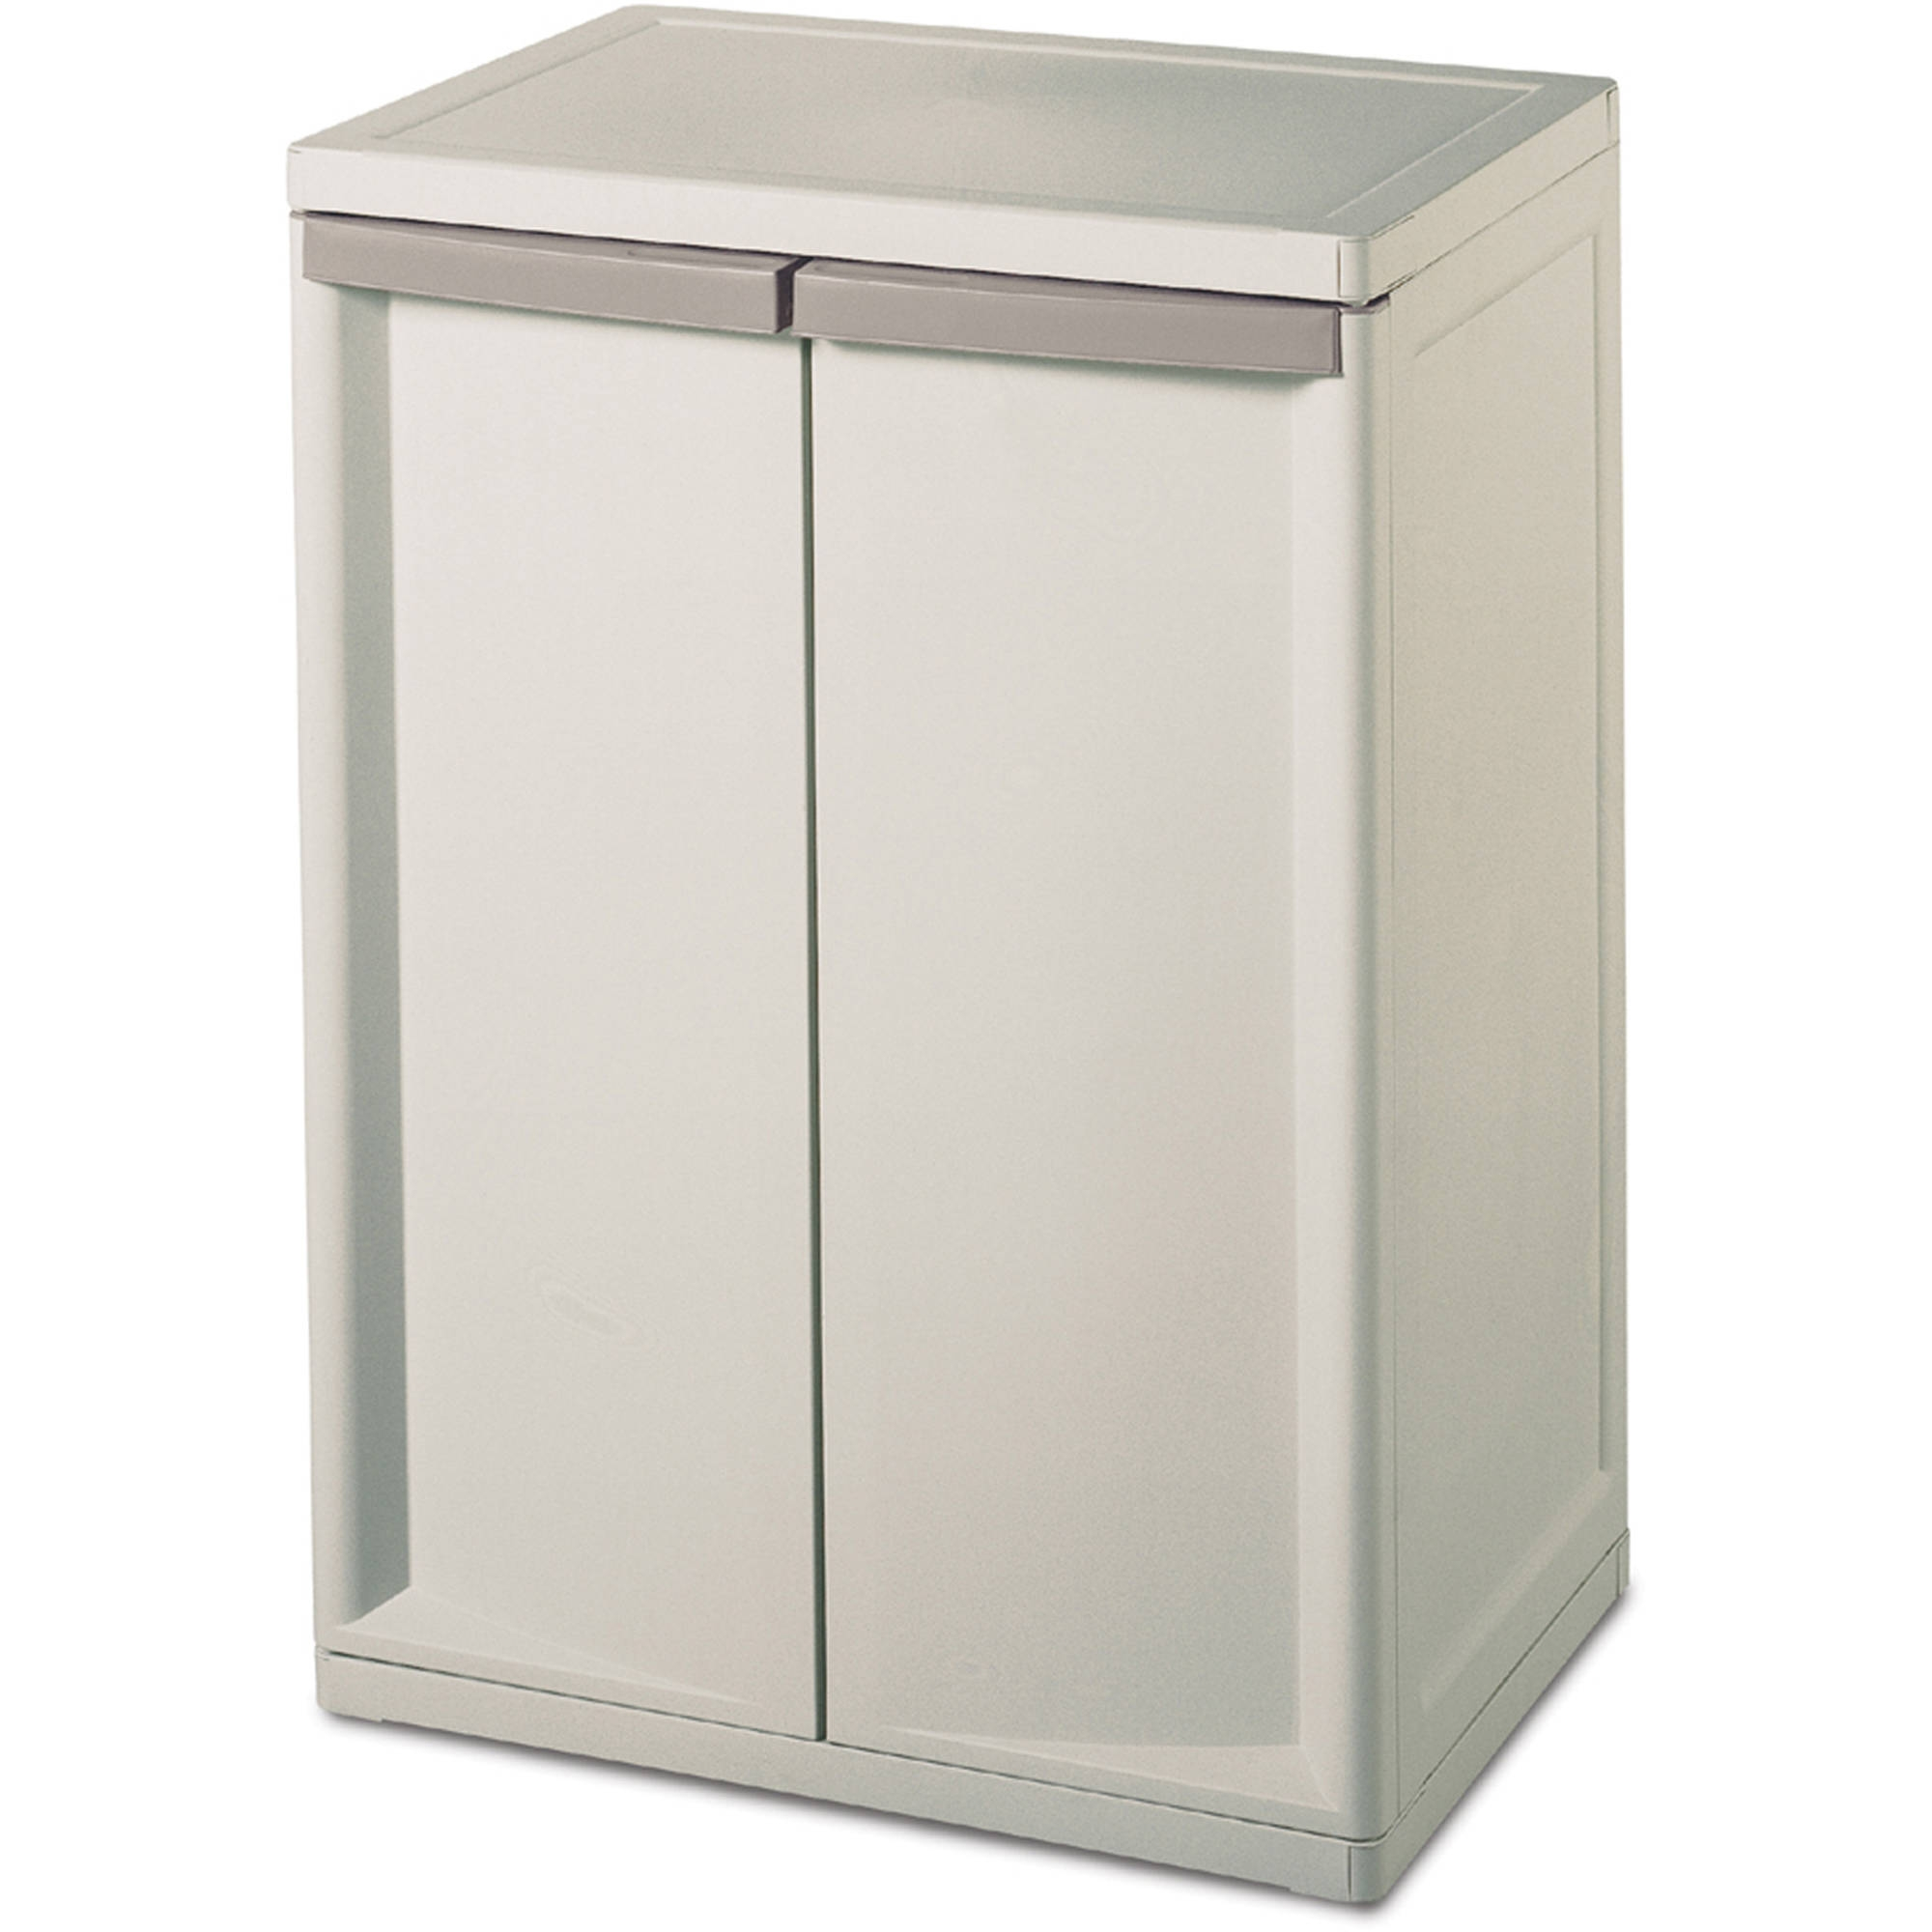 Two Shelf Storage CabinetTwo Shelf Storage Cabinet